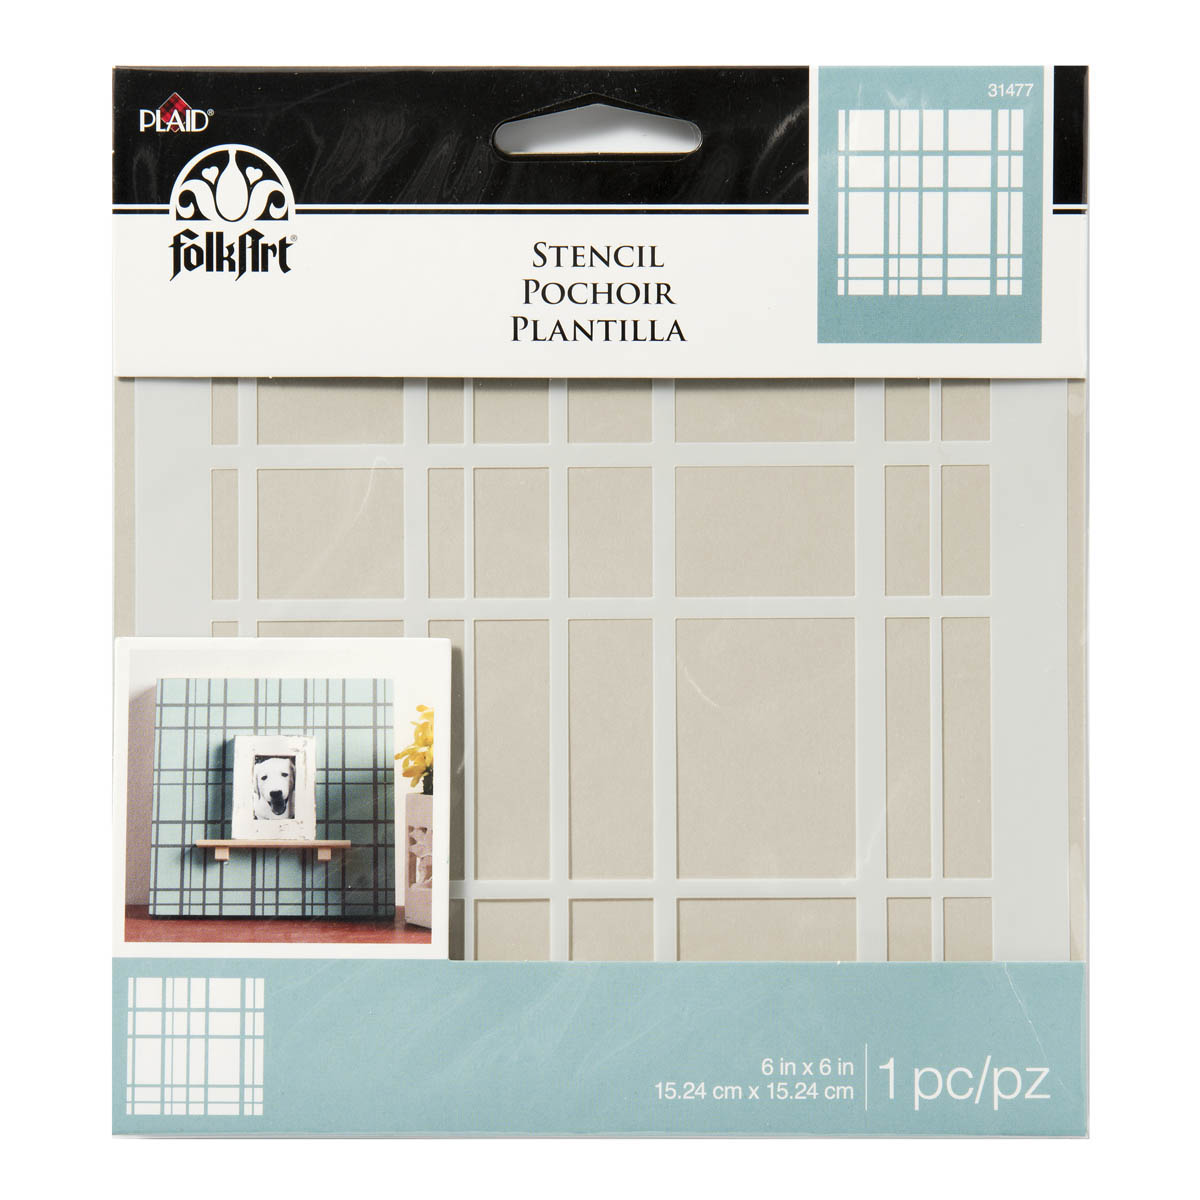 FolkArt ® Painting Stencils - Small - Plaid Design - 31477